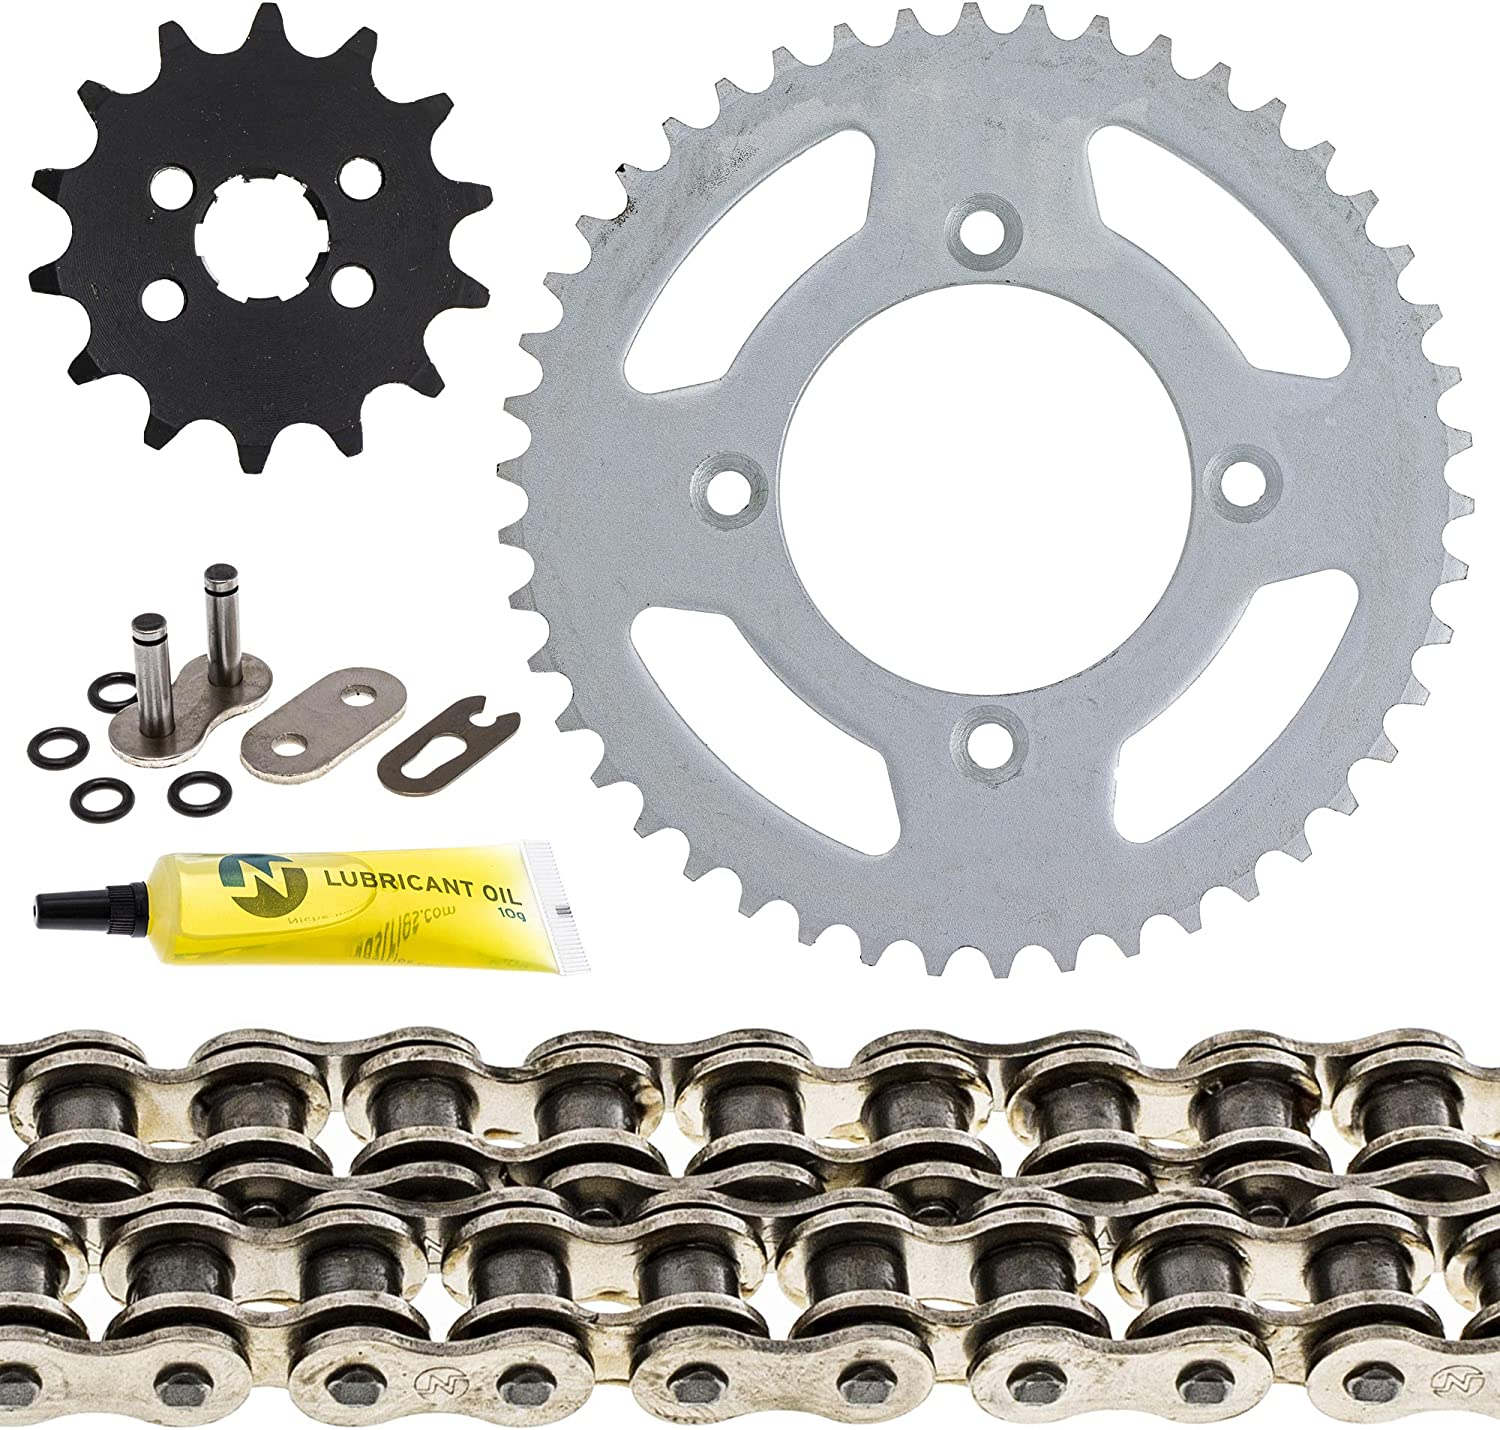 NICHE Drive Sprocket Chain Combo for Honda XR80R CRF80F Front 14 Rear 46 Tooth 420HZ Standard 110 Links